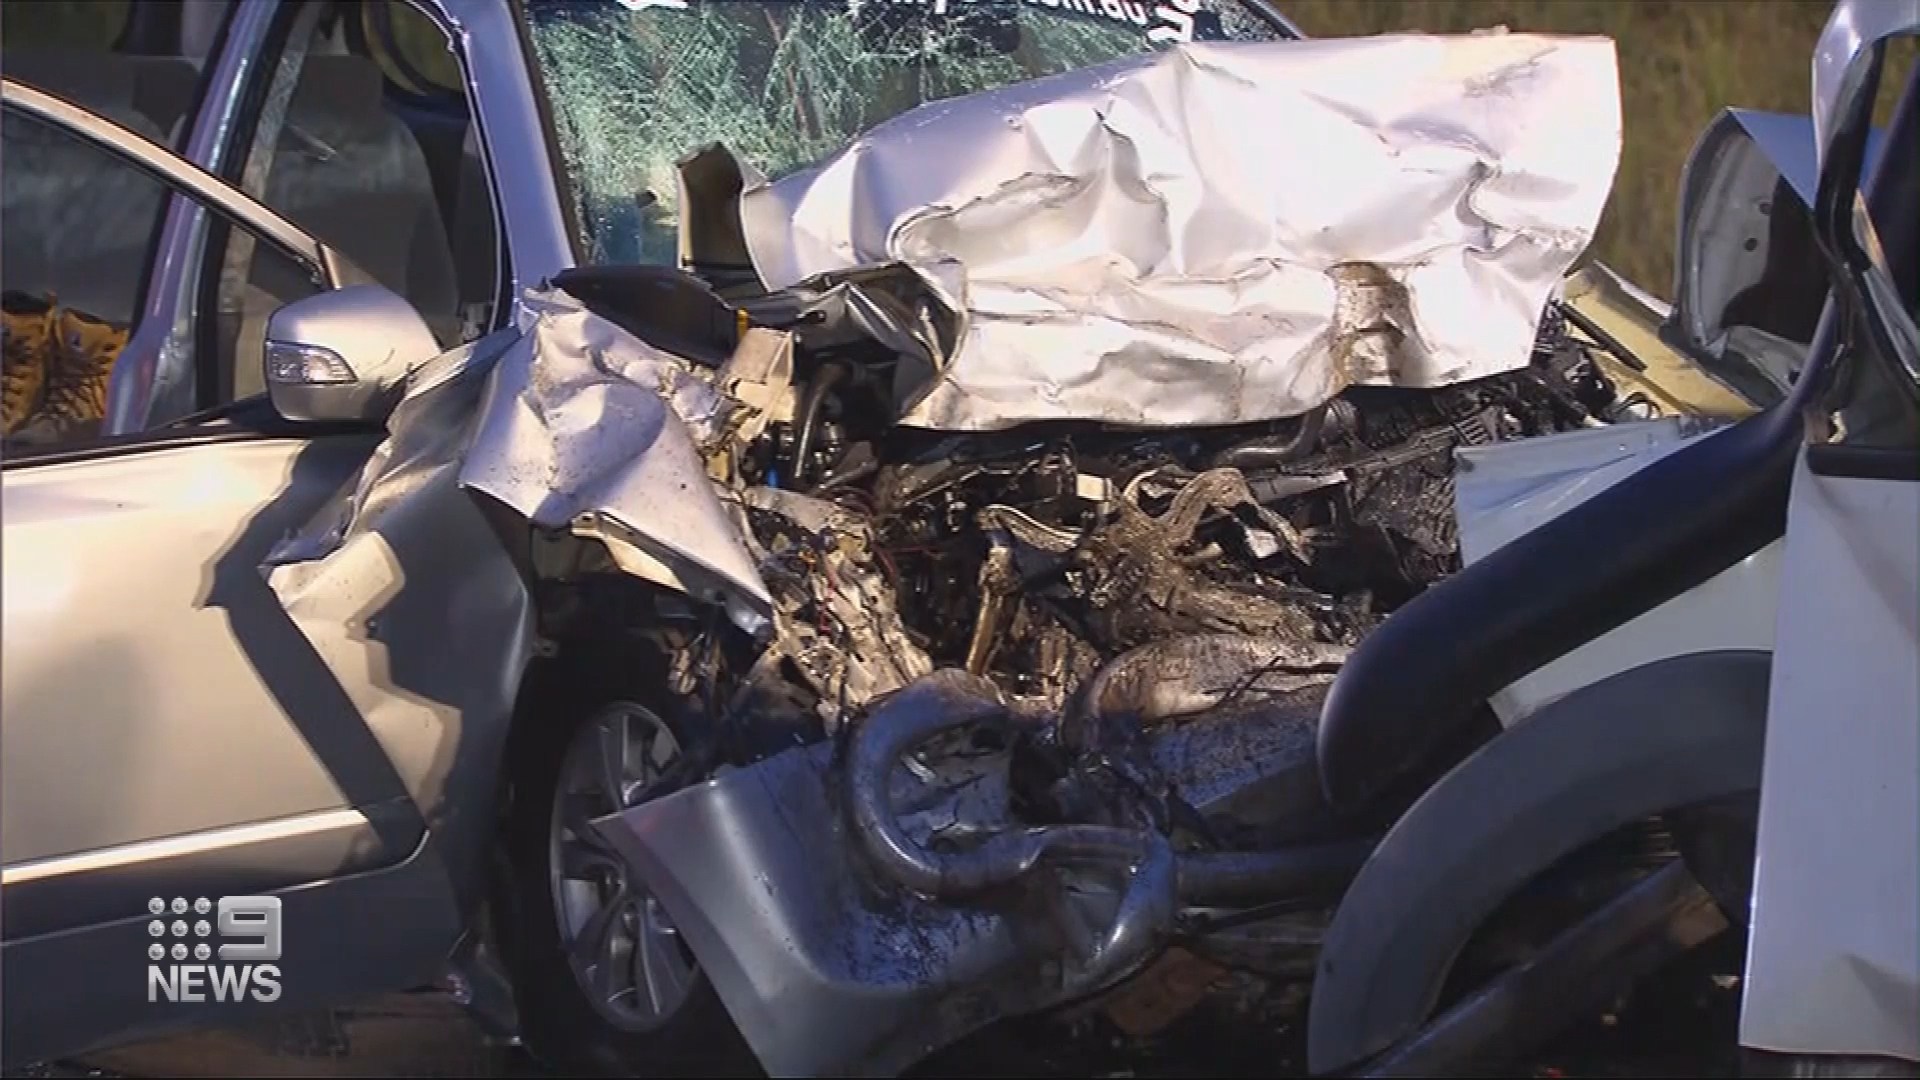 Three dead after horror head-on crash in NSW